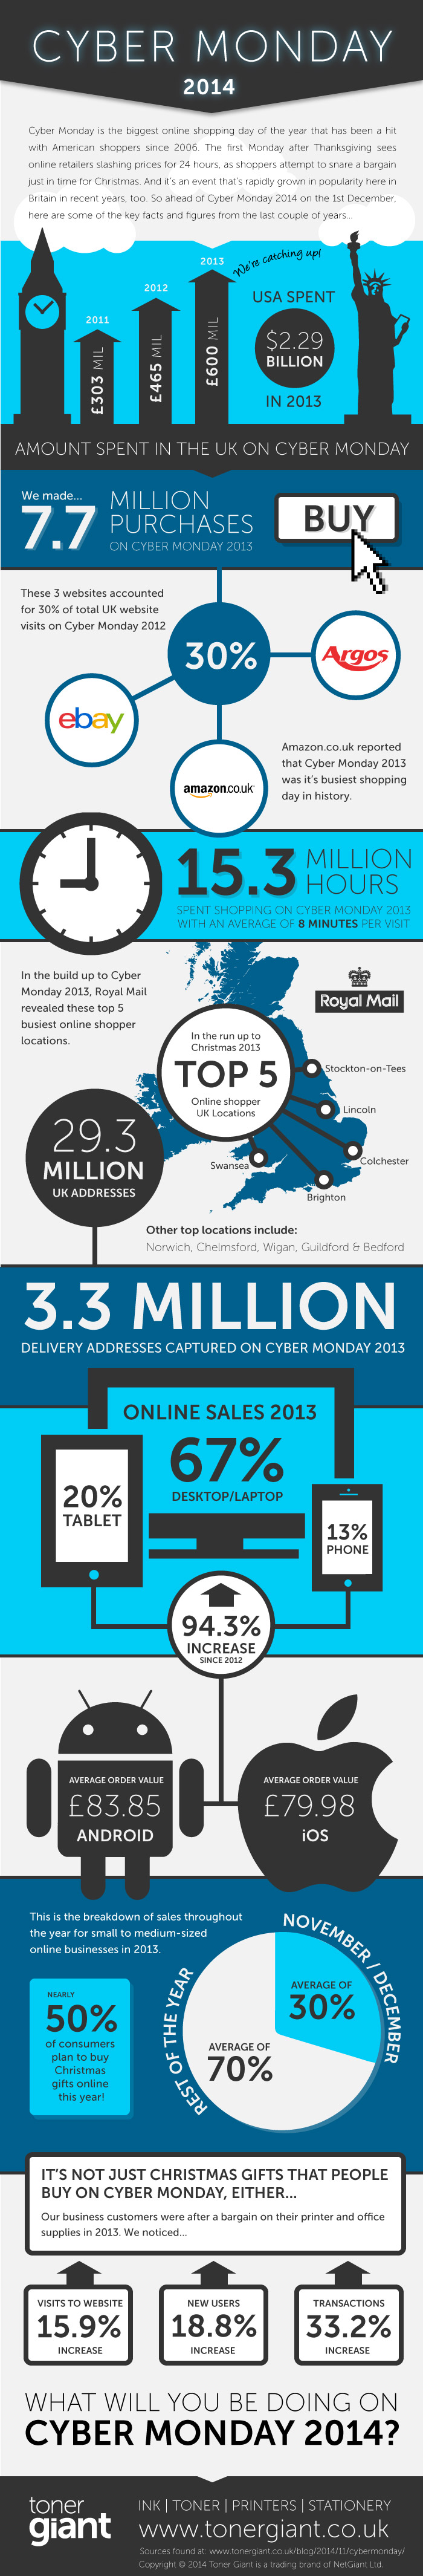 Cyber Monday Info Graphic